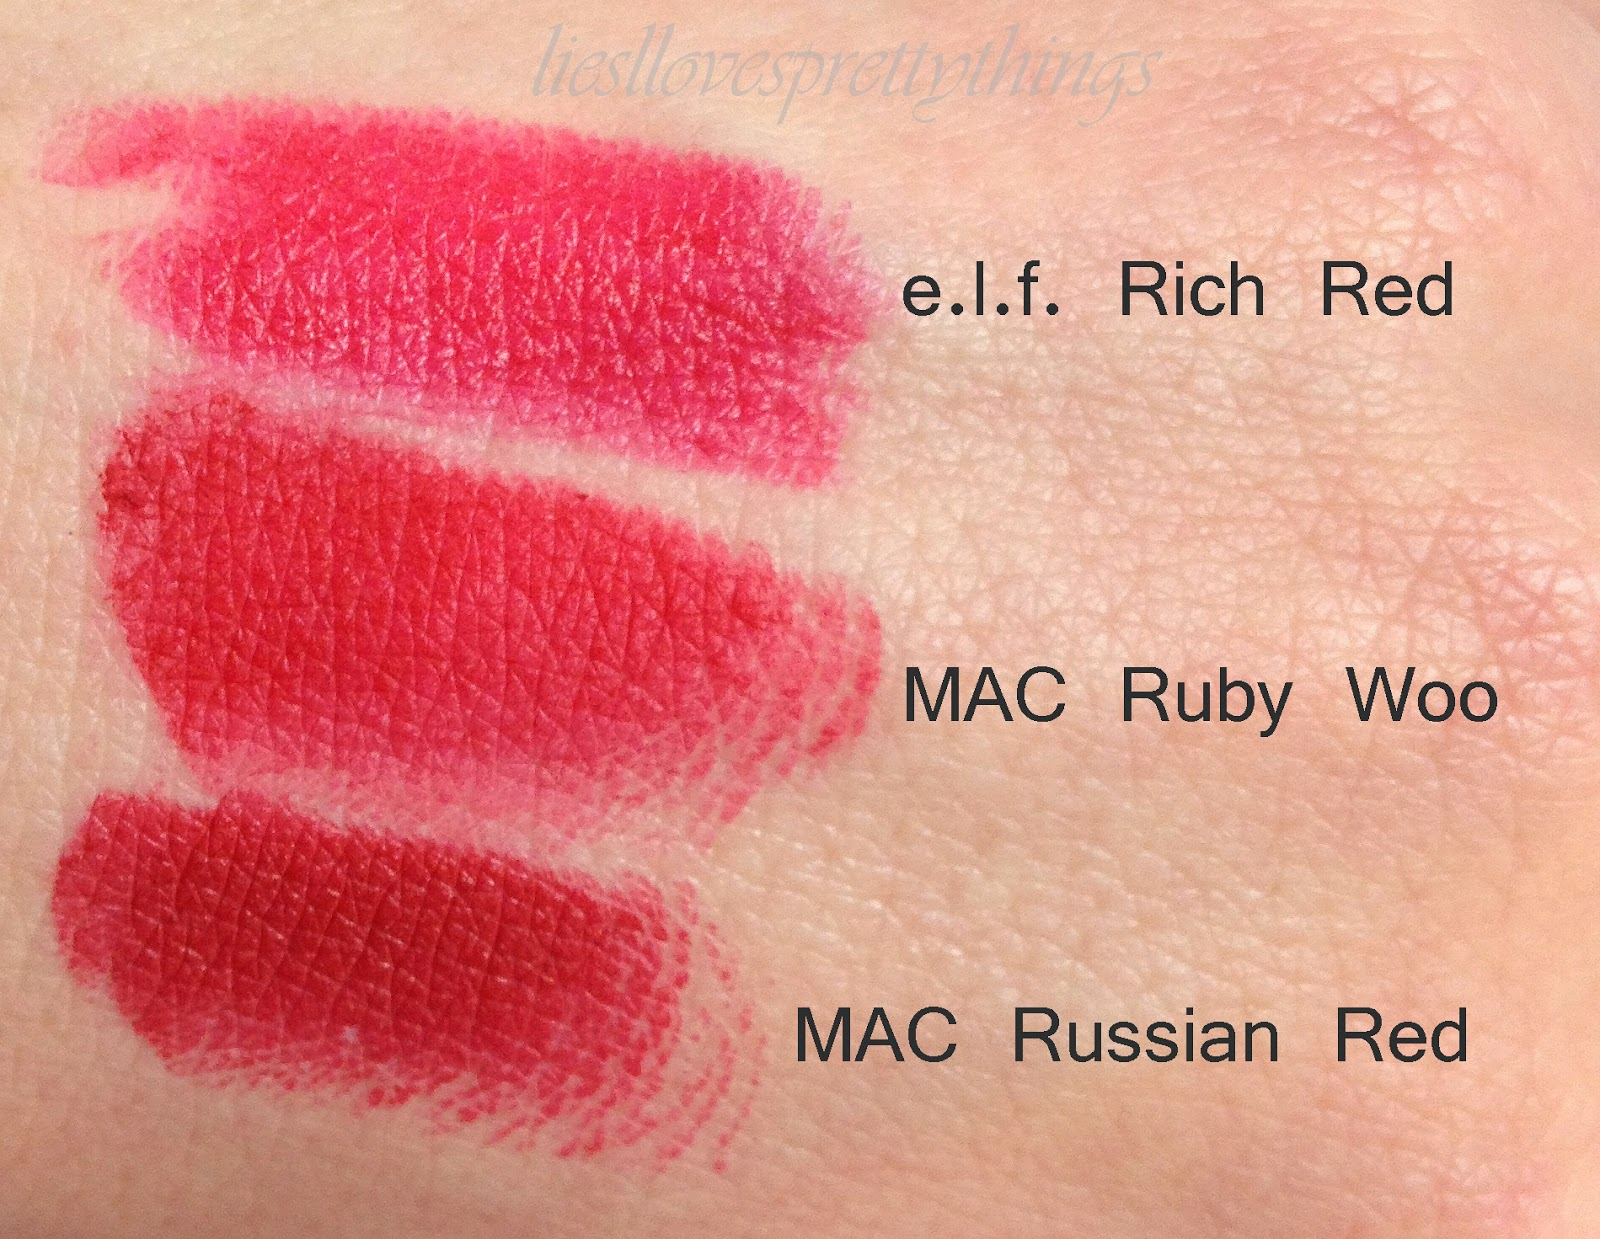 MAC Ruby Woo, MAC Russian Red, and elf Rich Red comparison